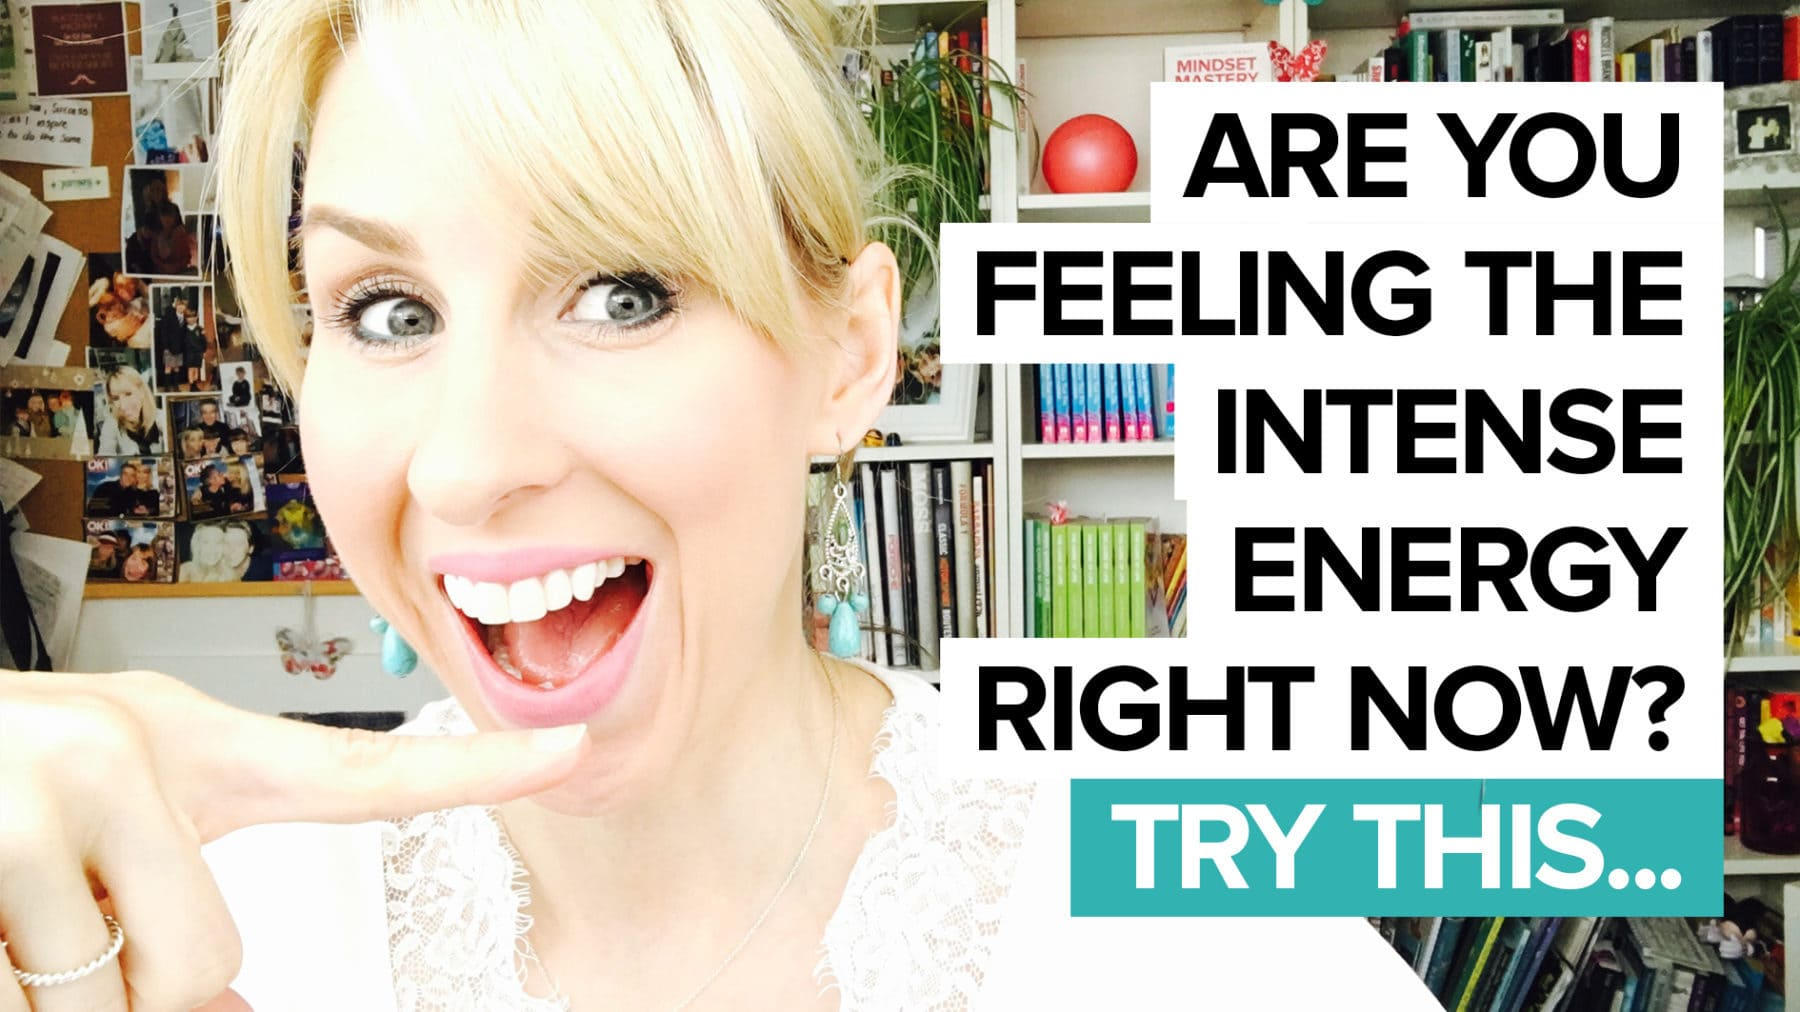 Are you feeling the intense energy right now? If so, try this…